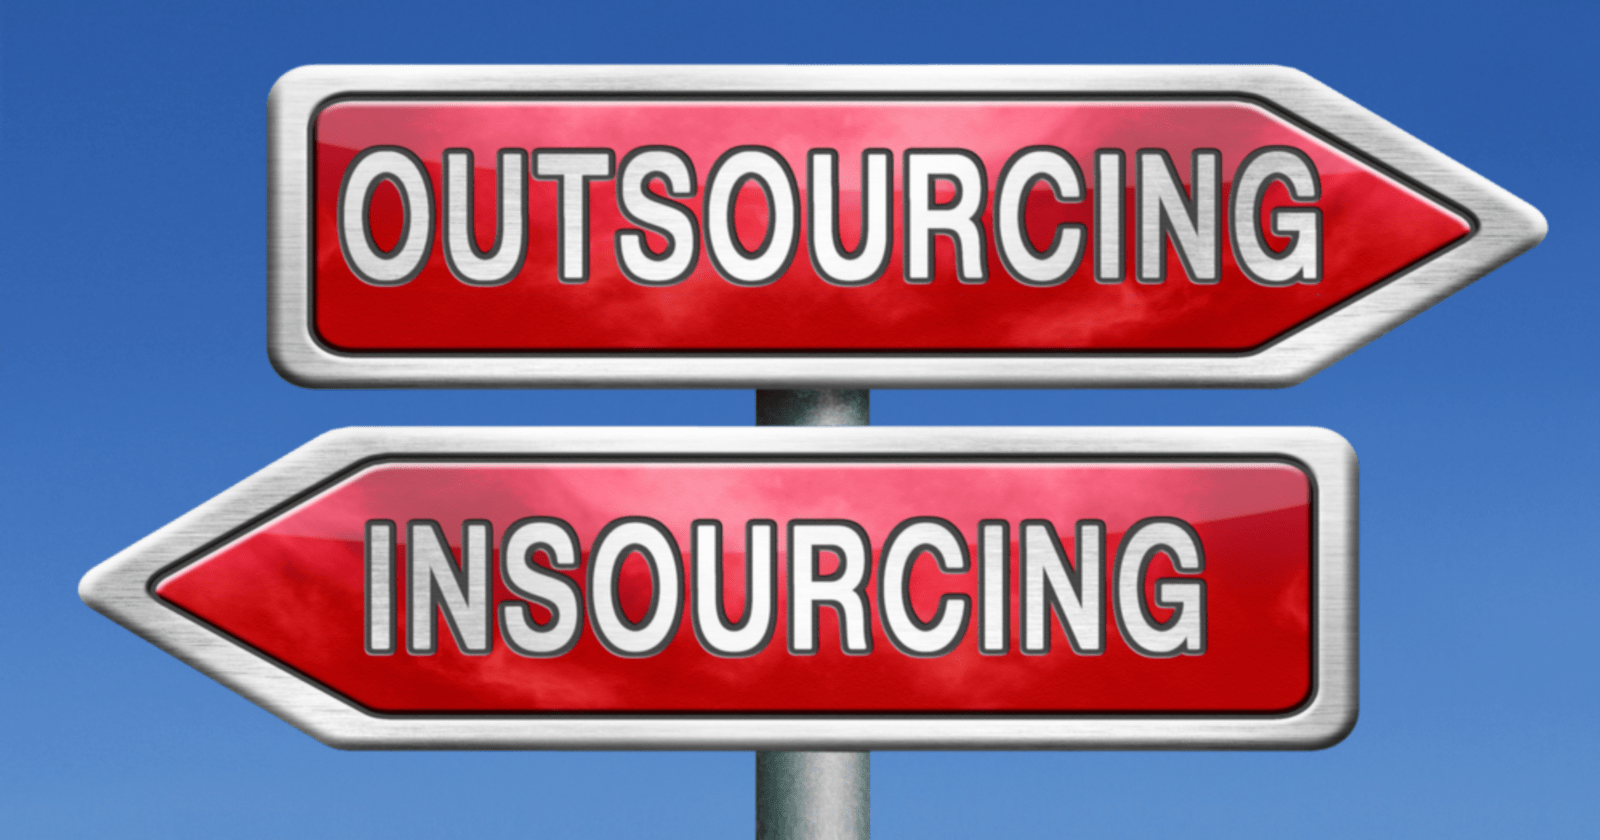 Outsource vs Insource: What's Best for Your Organization?